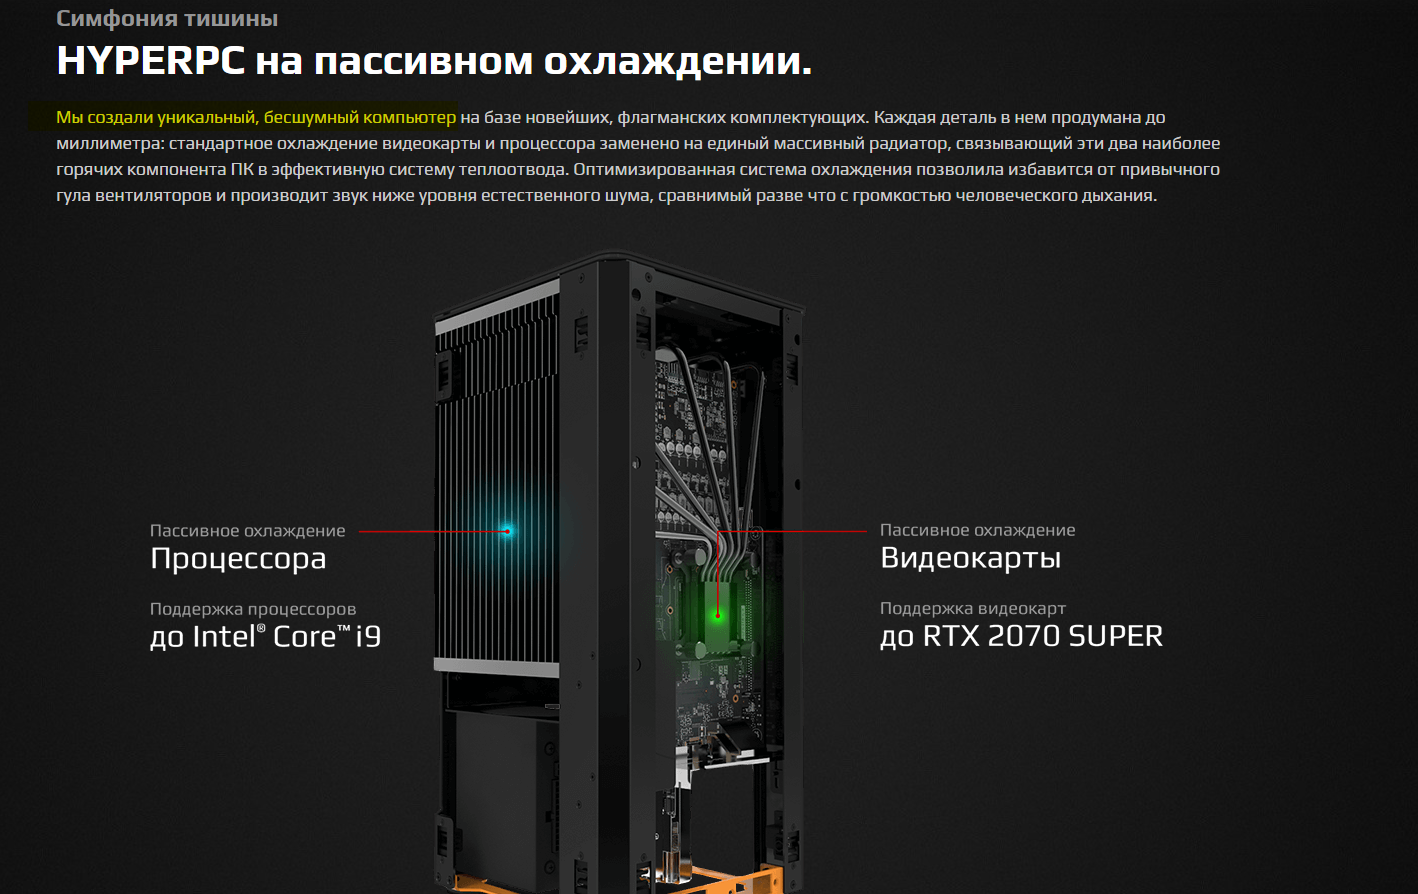 at exorbitant prices from hyperpc.ru